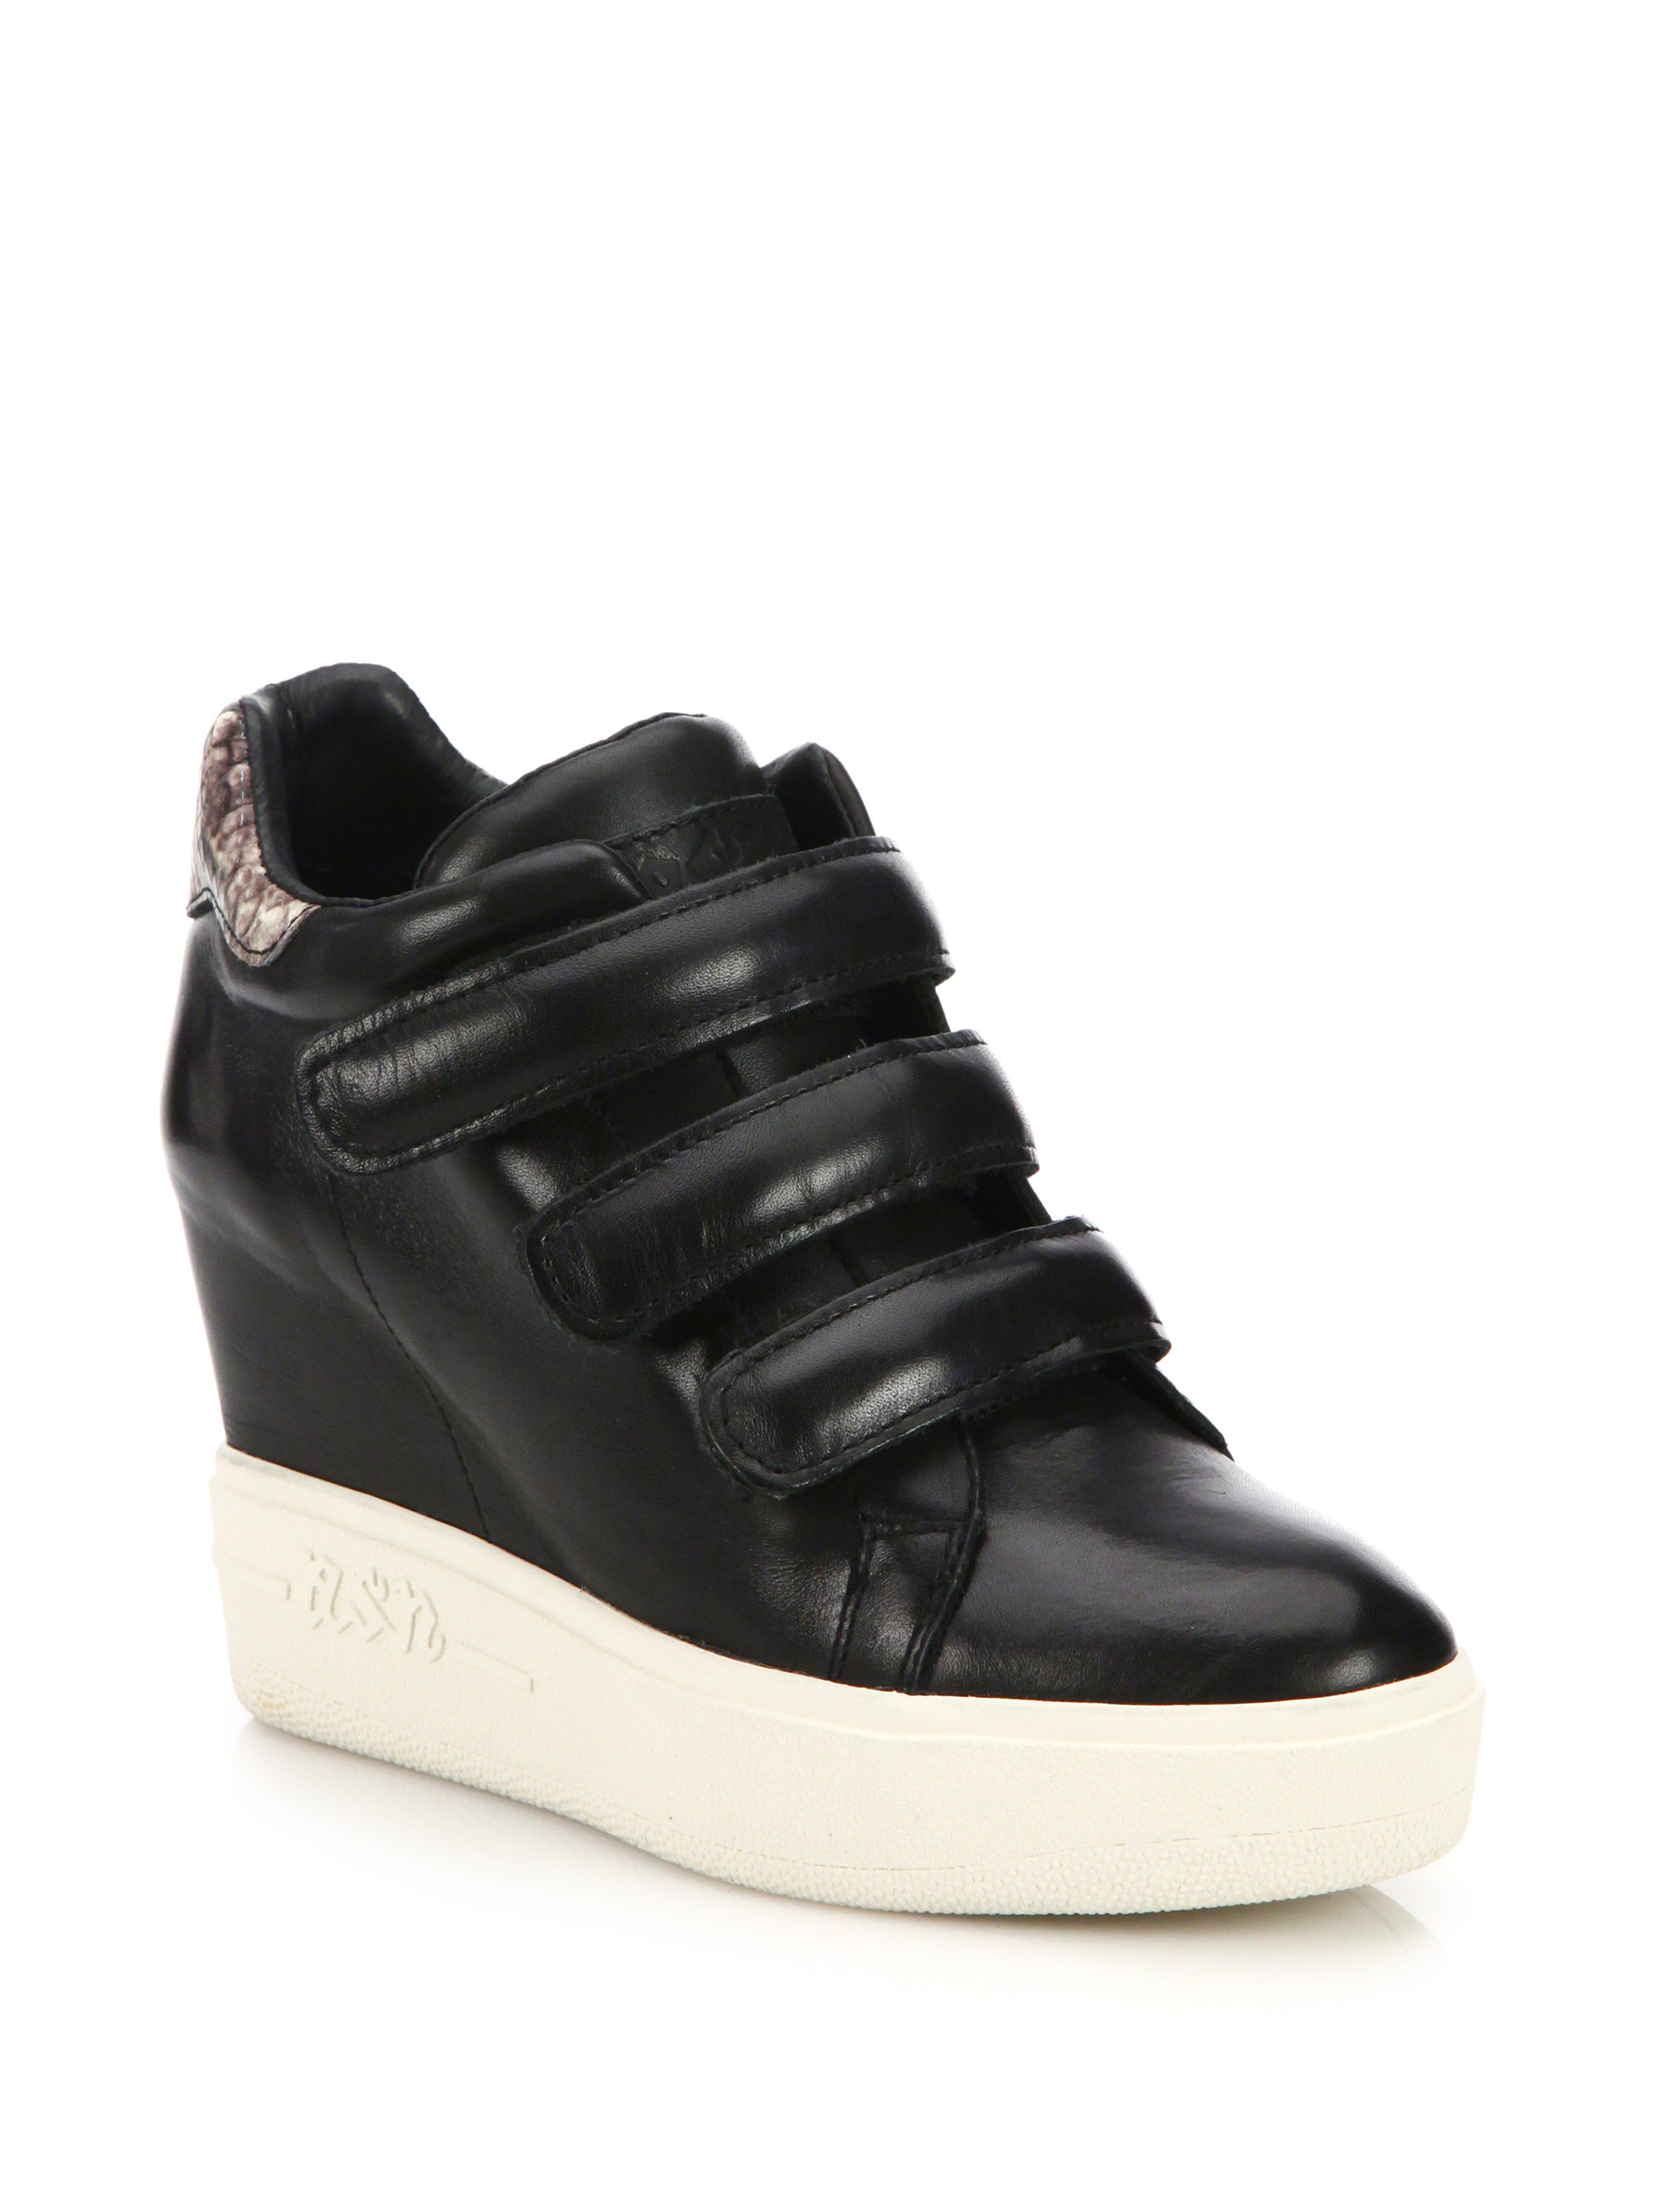 ash avedon leather high top wedge sneakers in black lyst